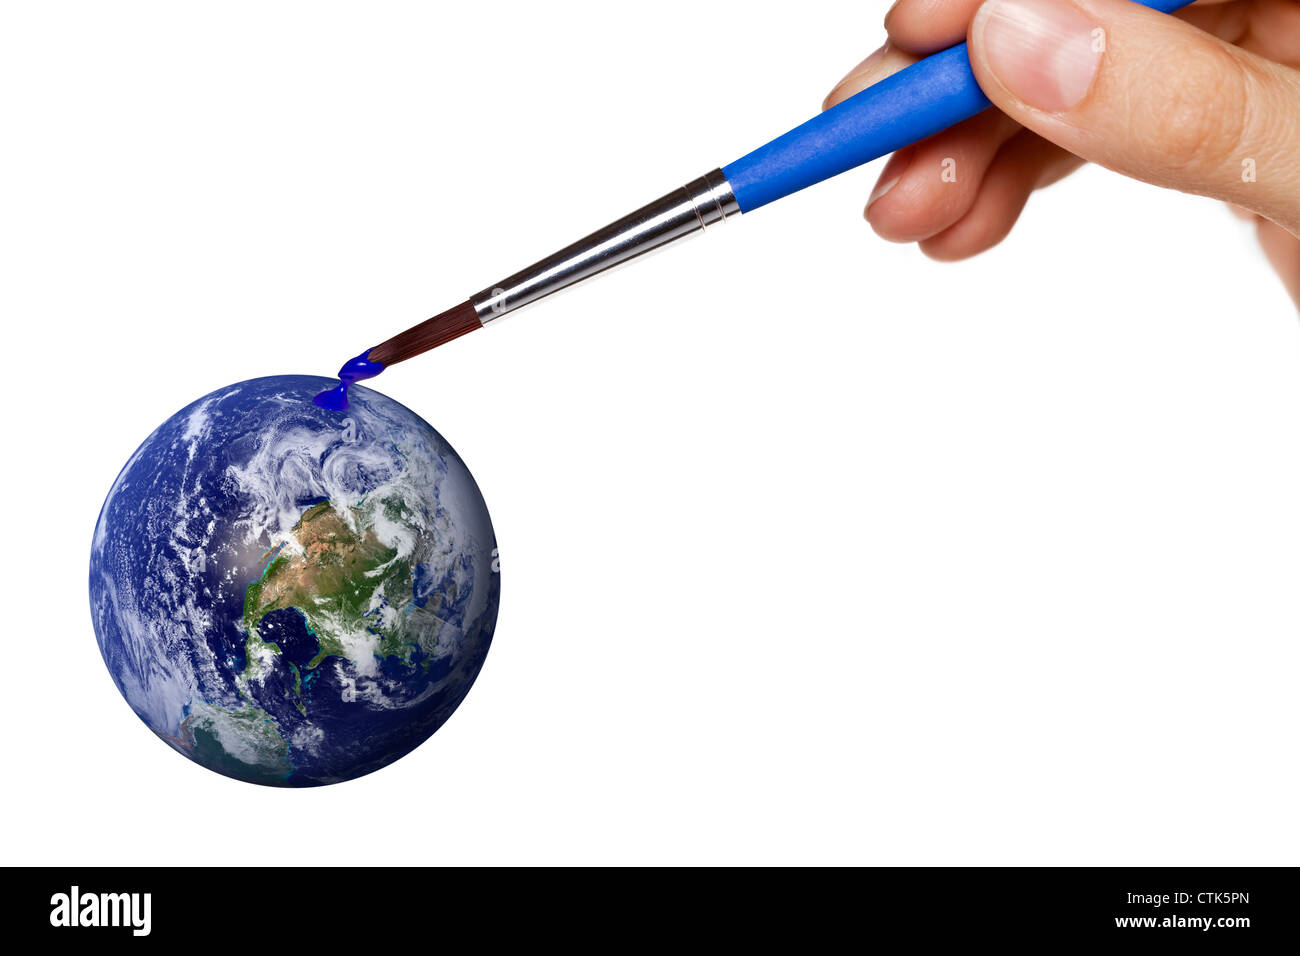 colouring blue planet earth - Stock Image